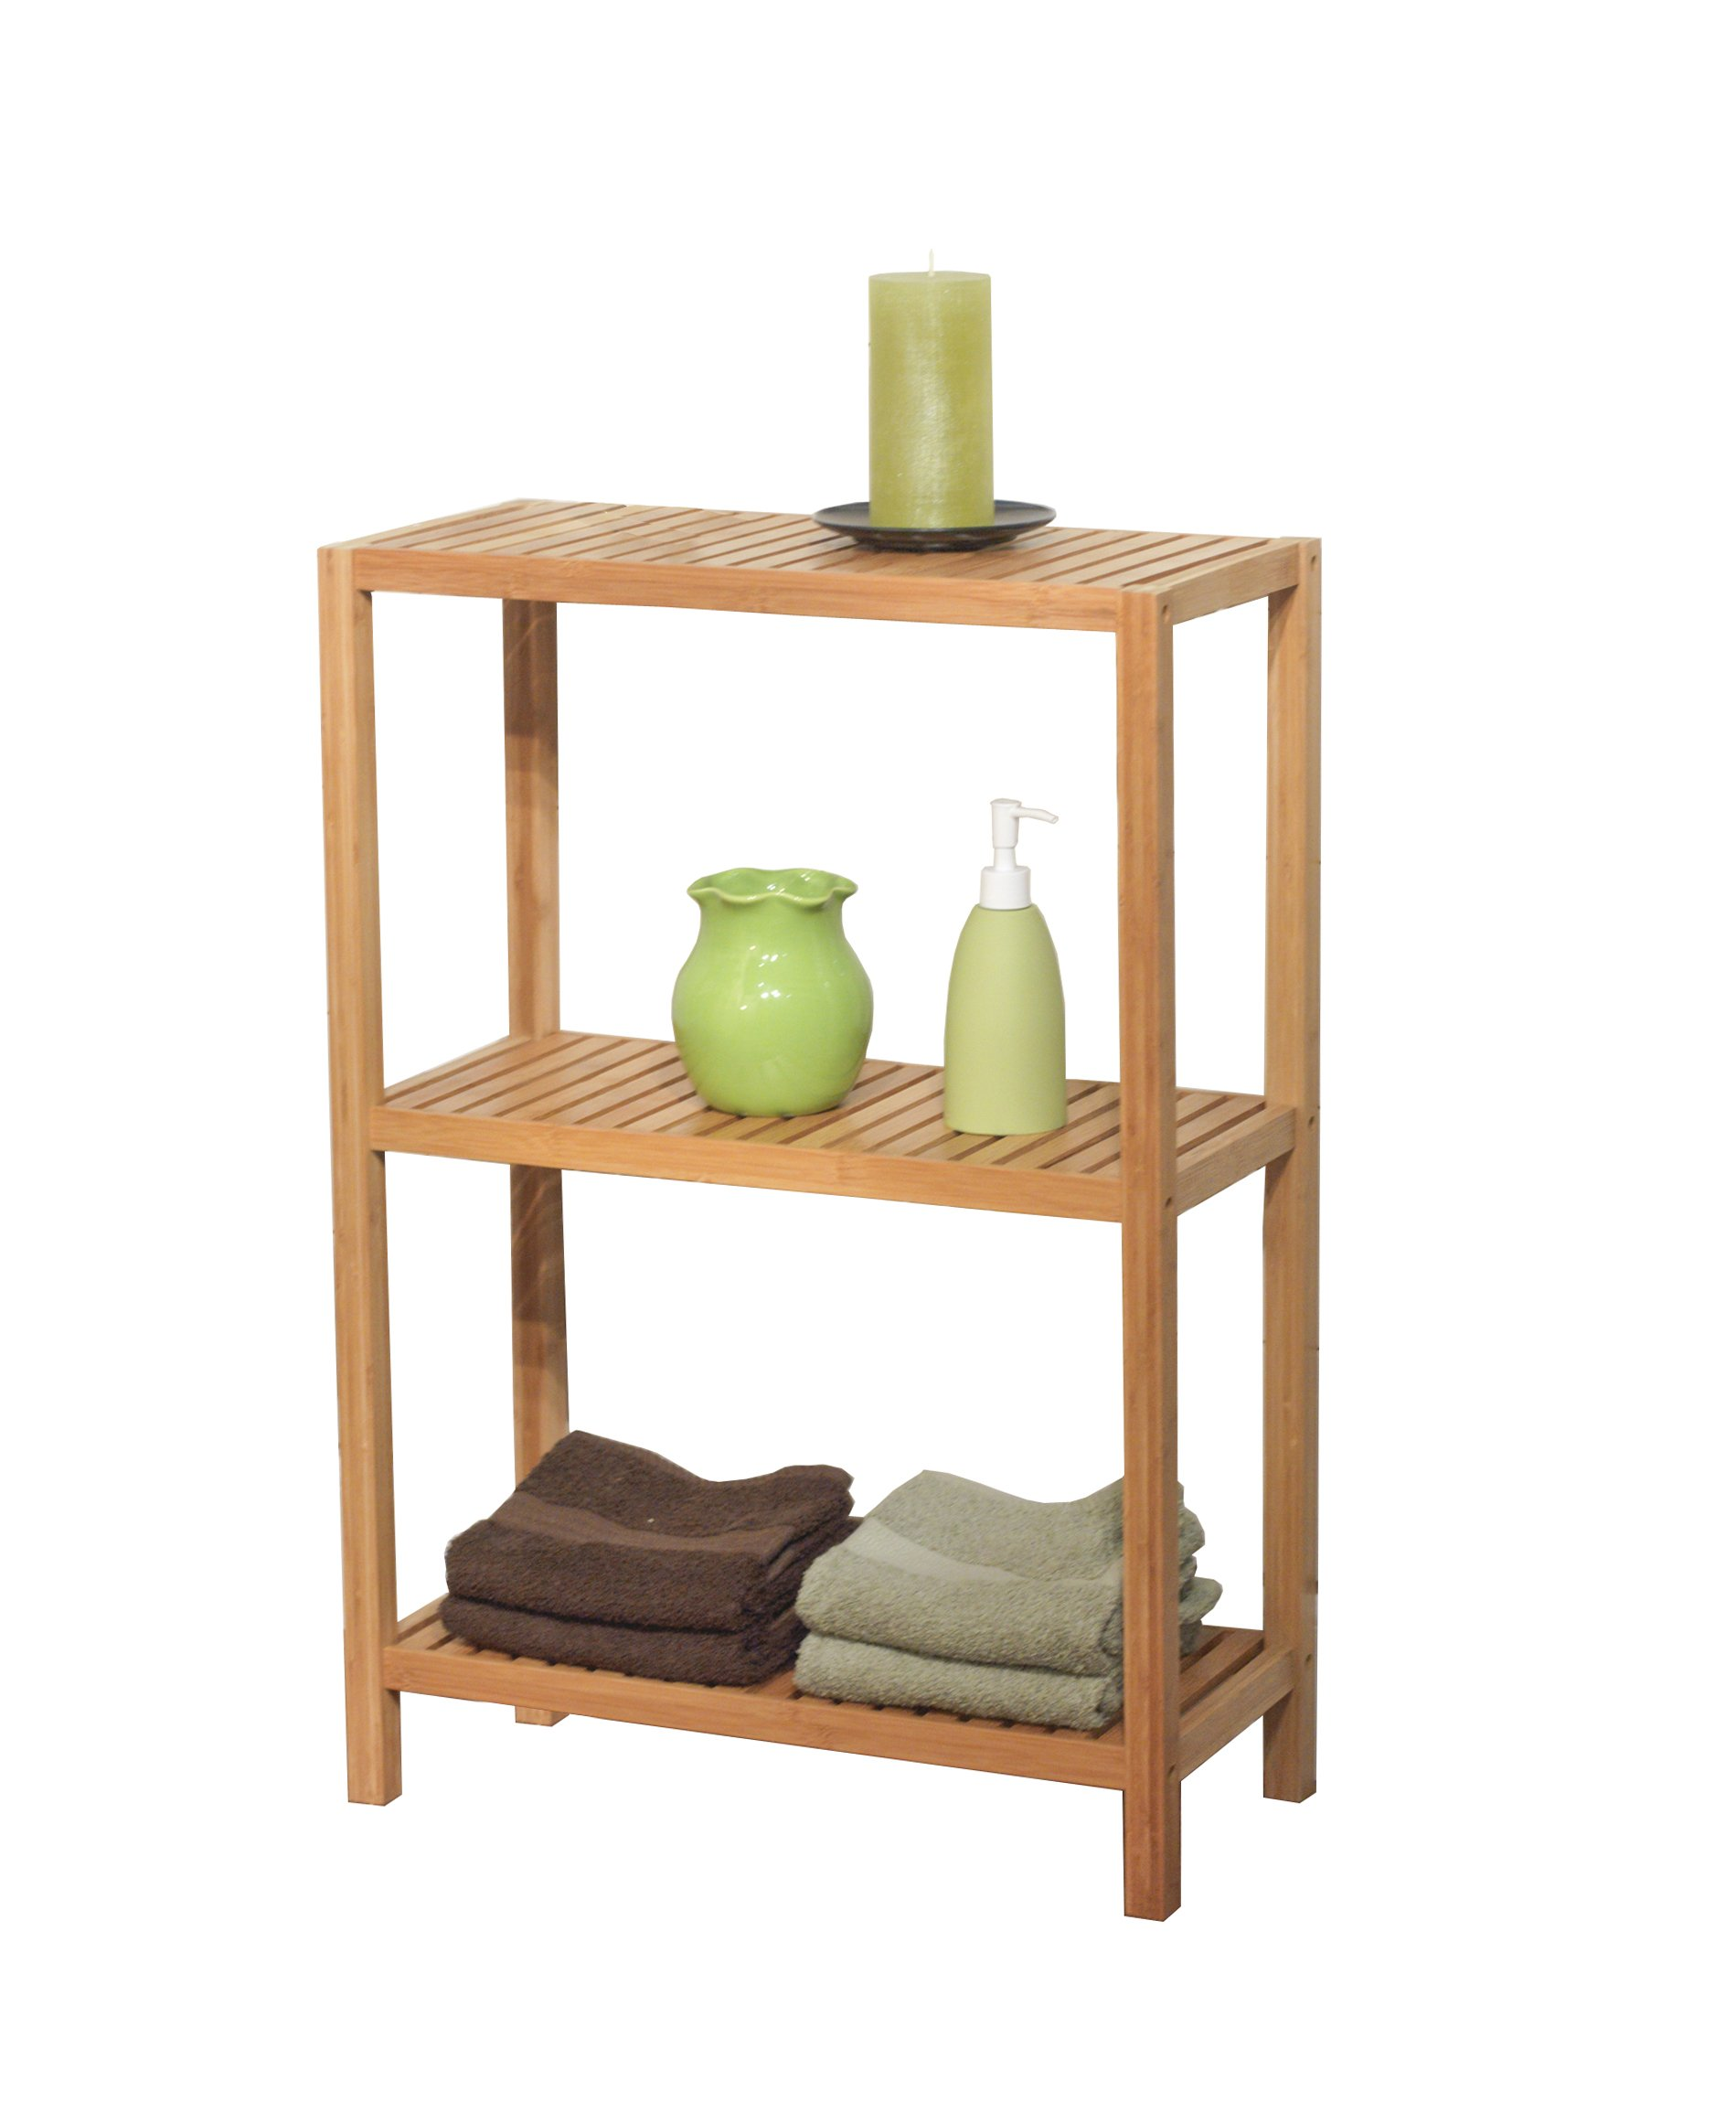 Target Marketing Systems 23023NAT Bamboo Shelf Bathroom Shelf, Bamboo